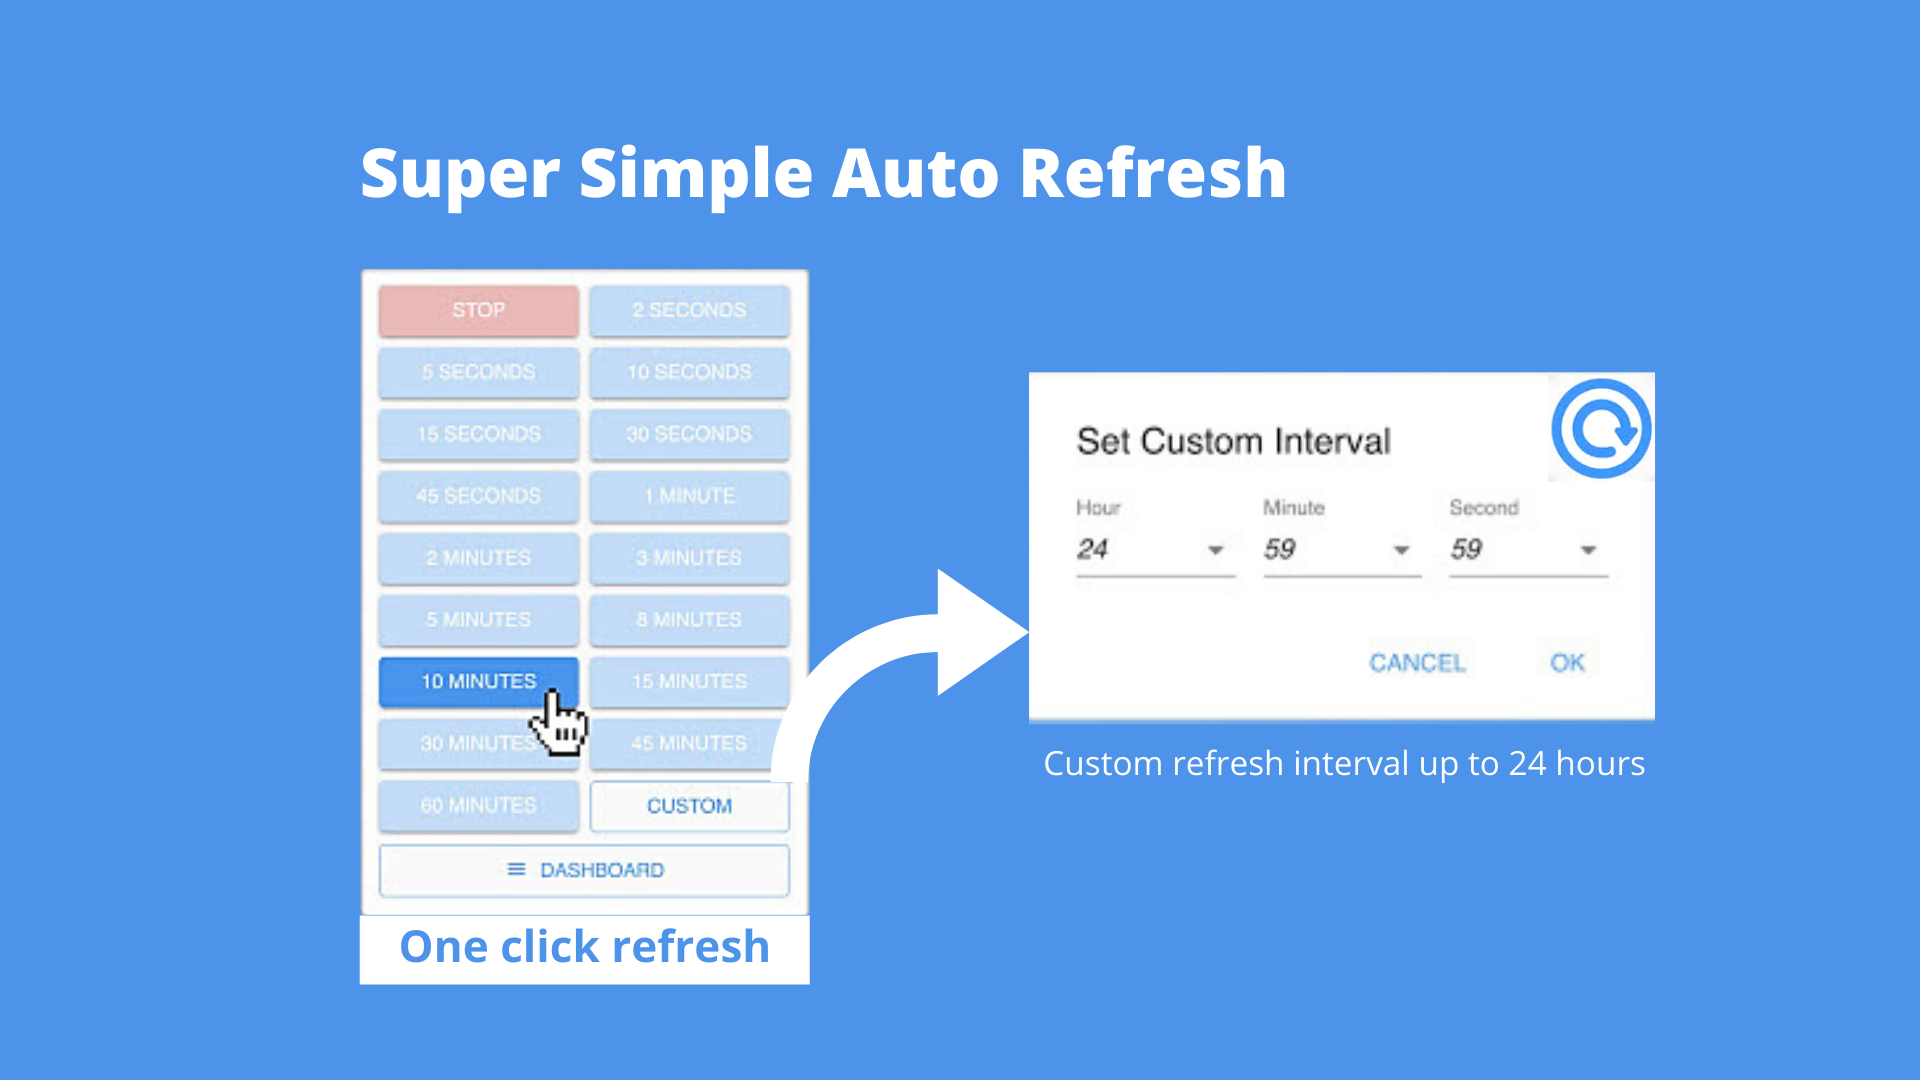 How Super Simple Auto Refresh Works